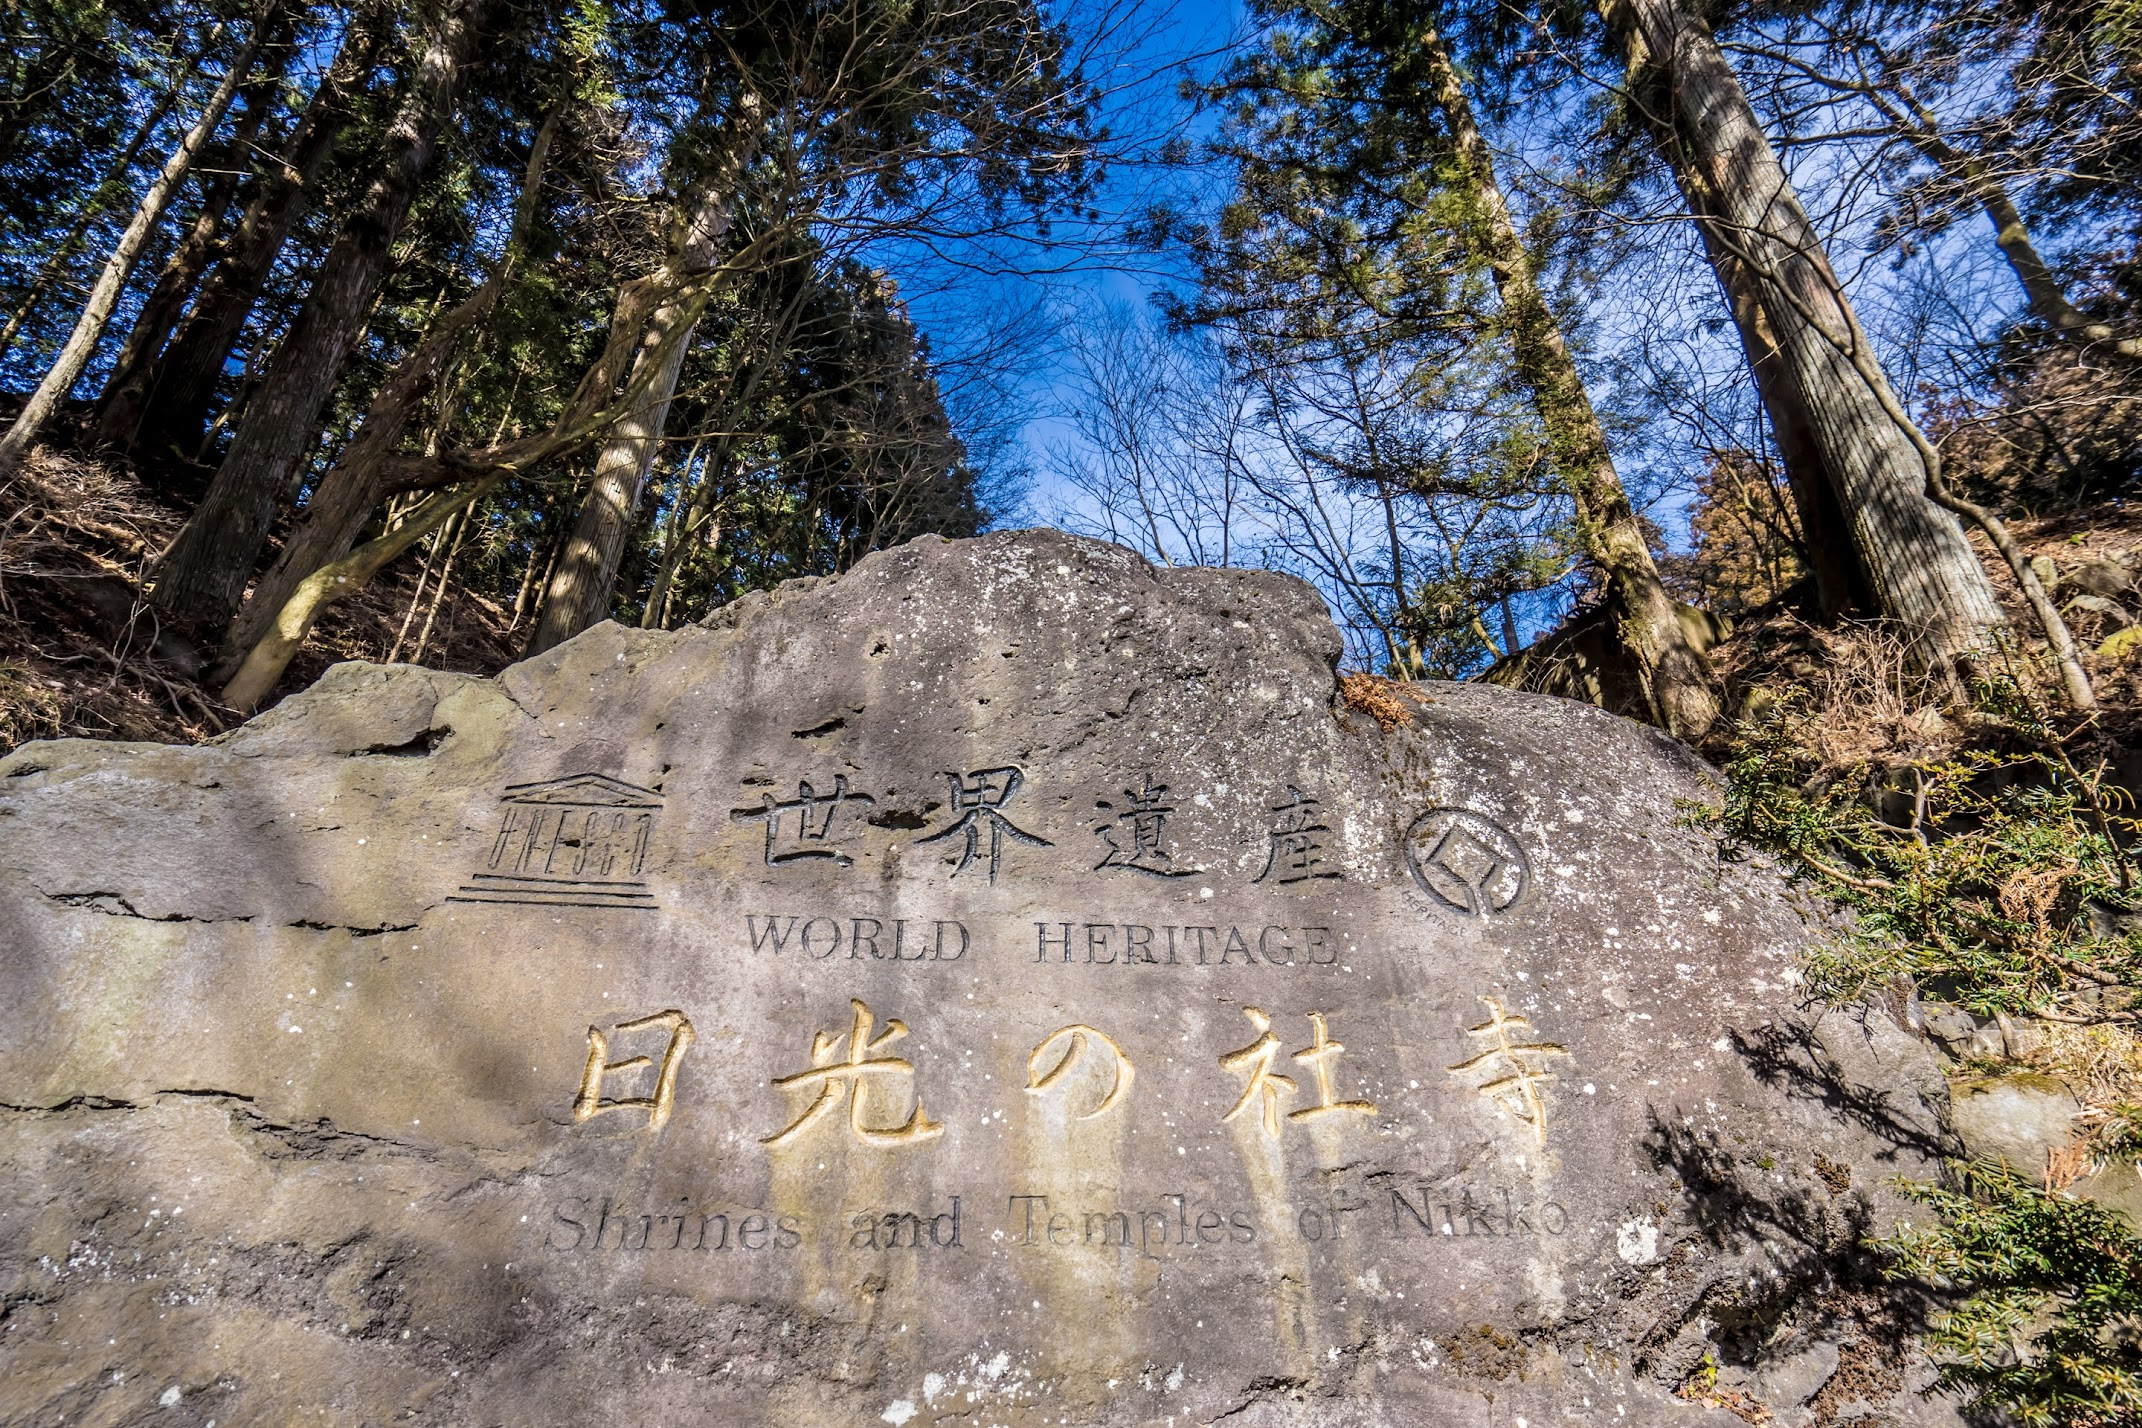 World Heritage Shrines and Temples of Nikko